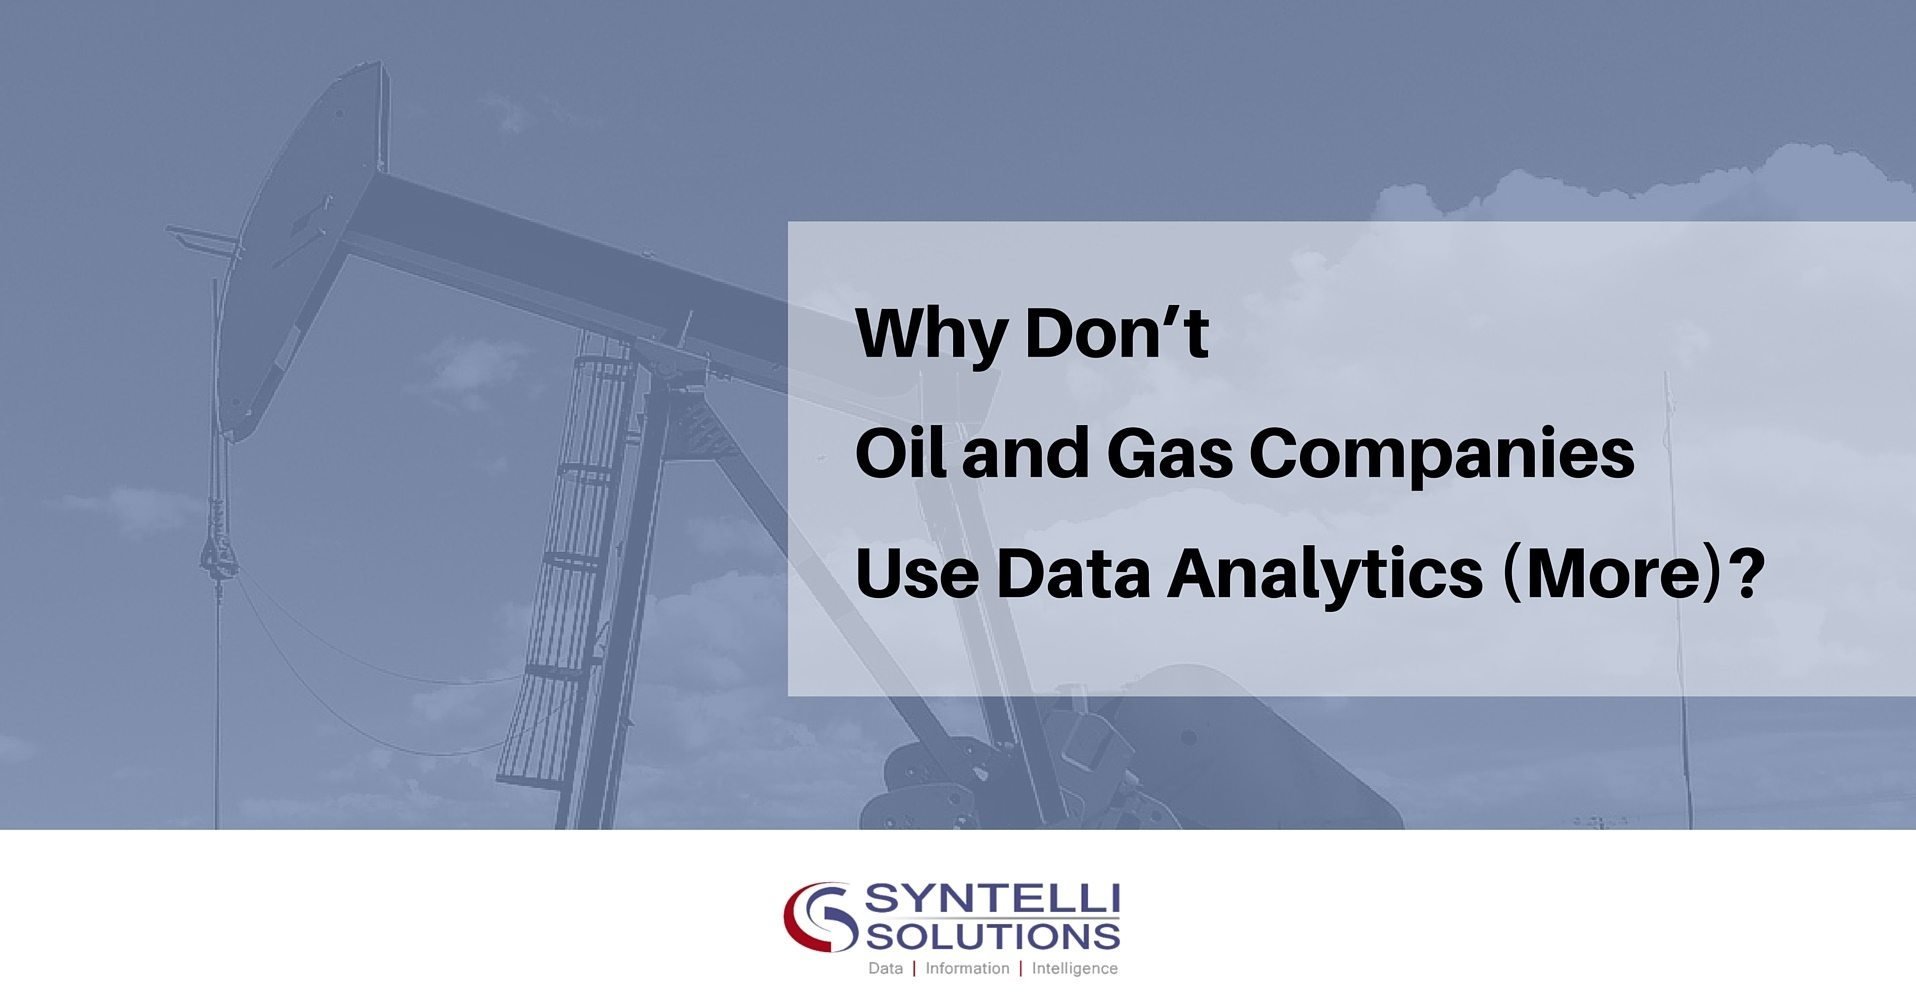 Oil and Gas Companies Use Big Data Analytics